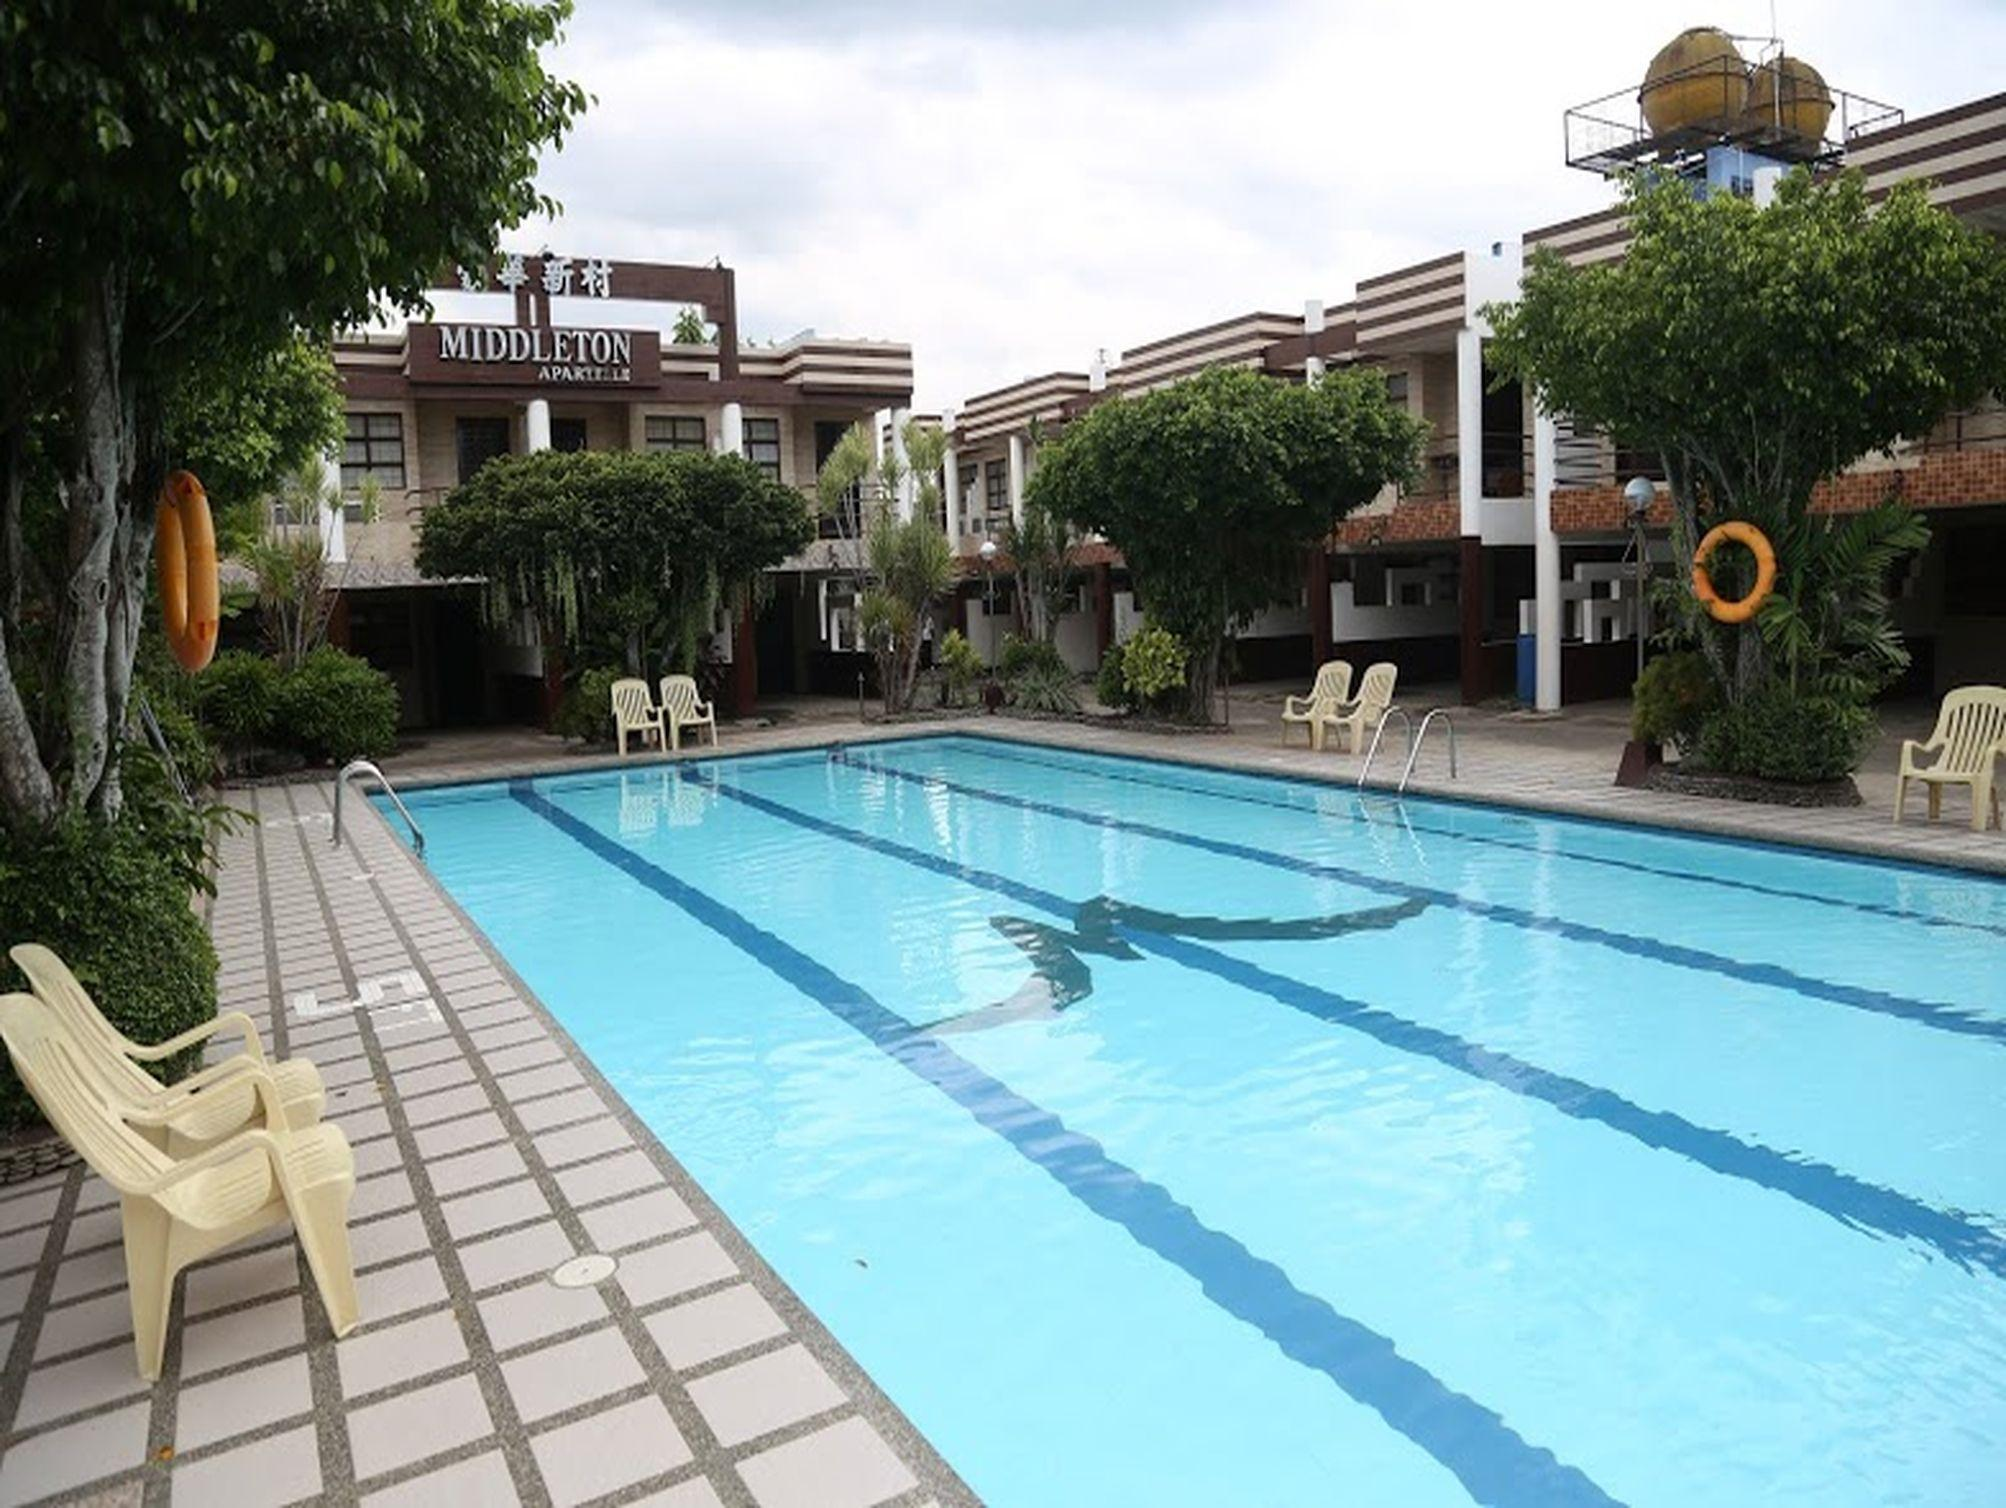 Middleton Apartelle West Cagayan De Oro Cagayan De Oro Philippines Great Discounted Rates